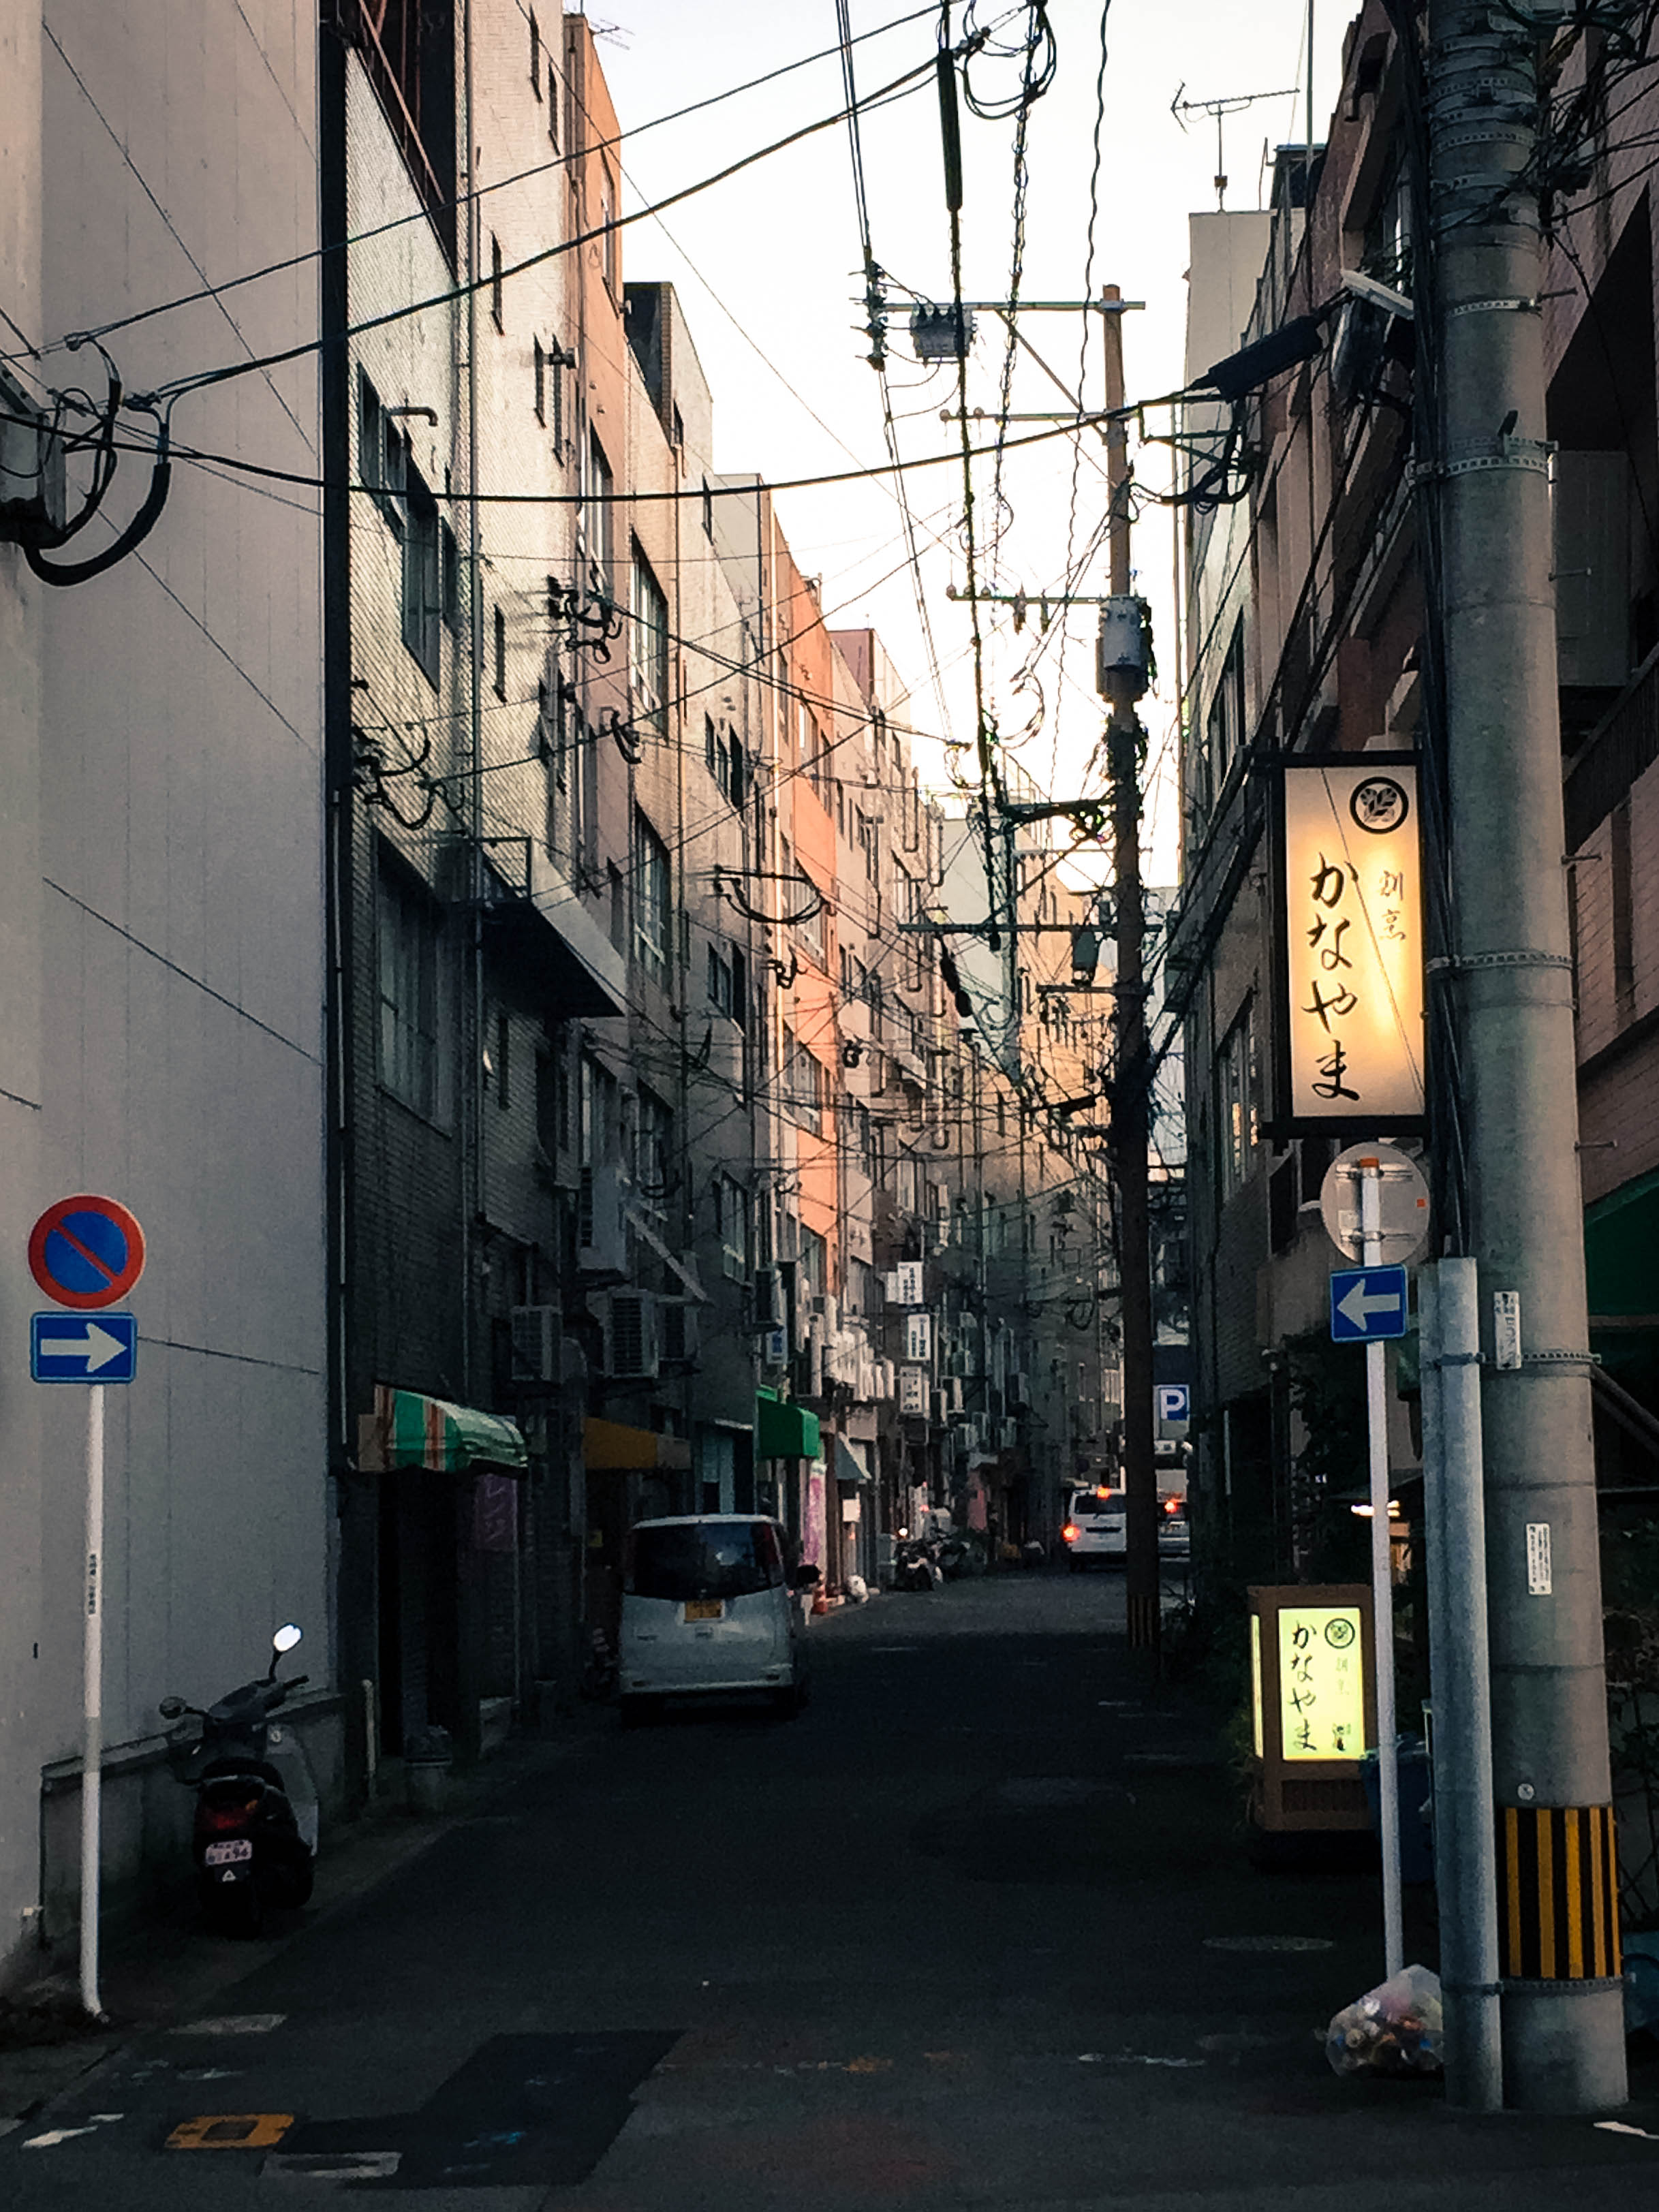 One of the better back alleys I've seen in my day